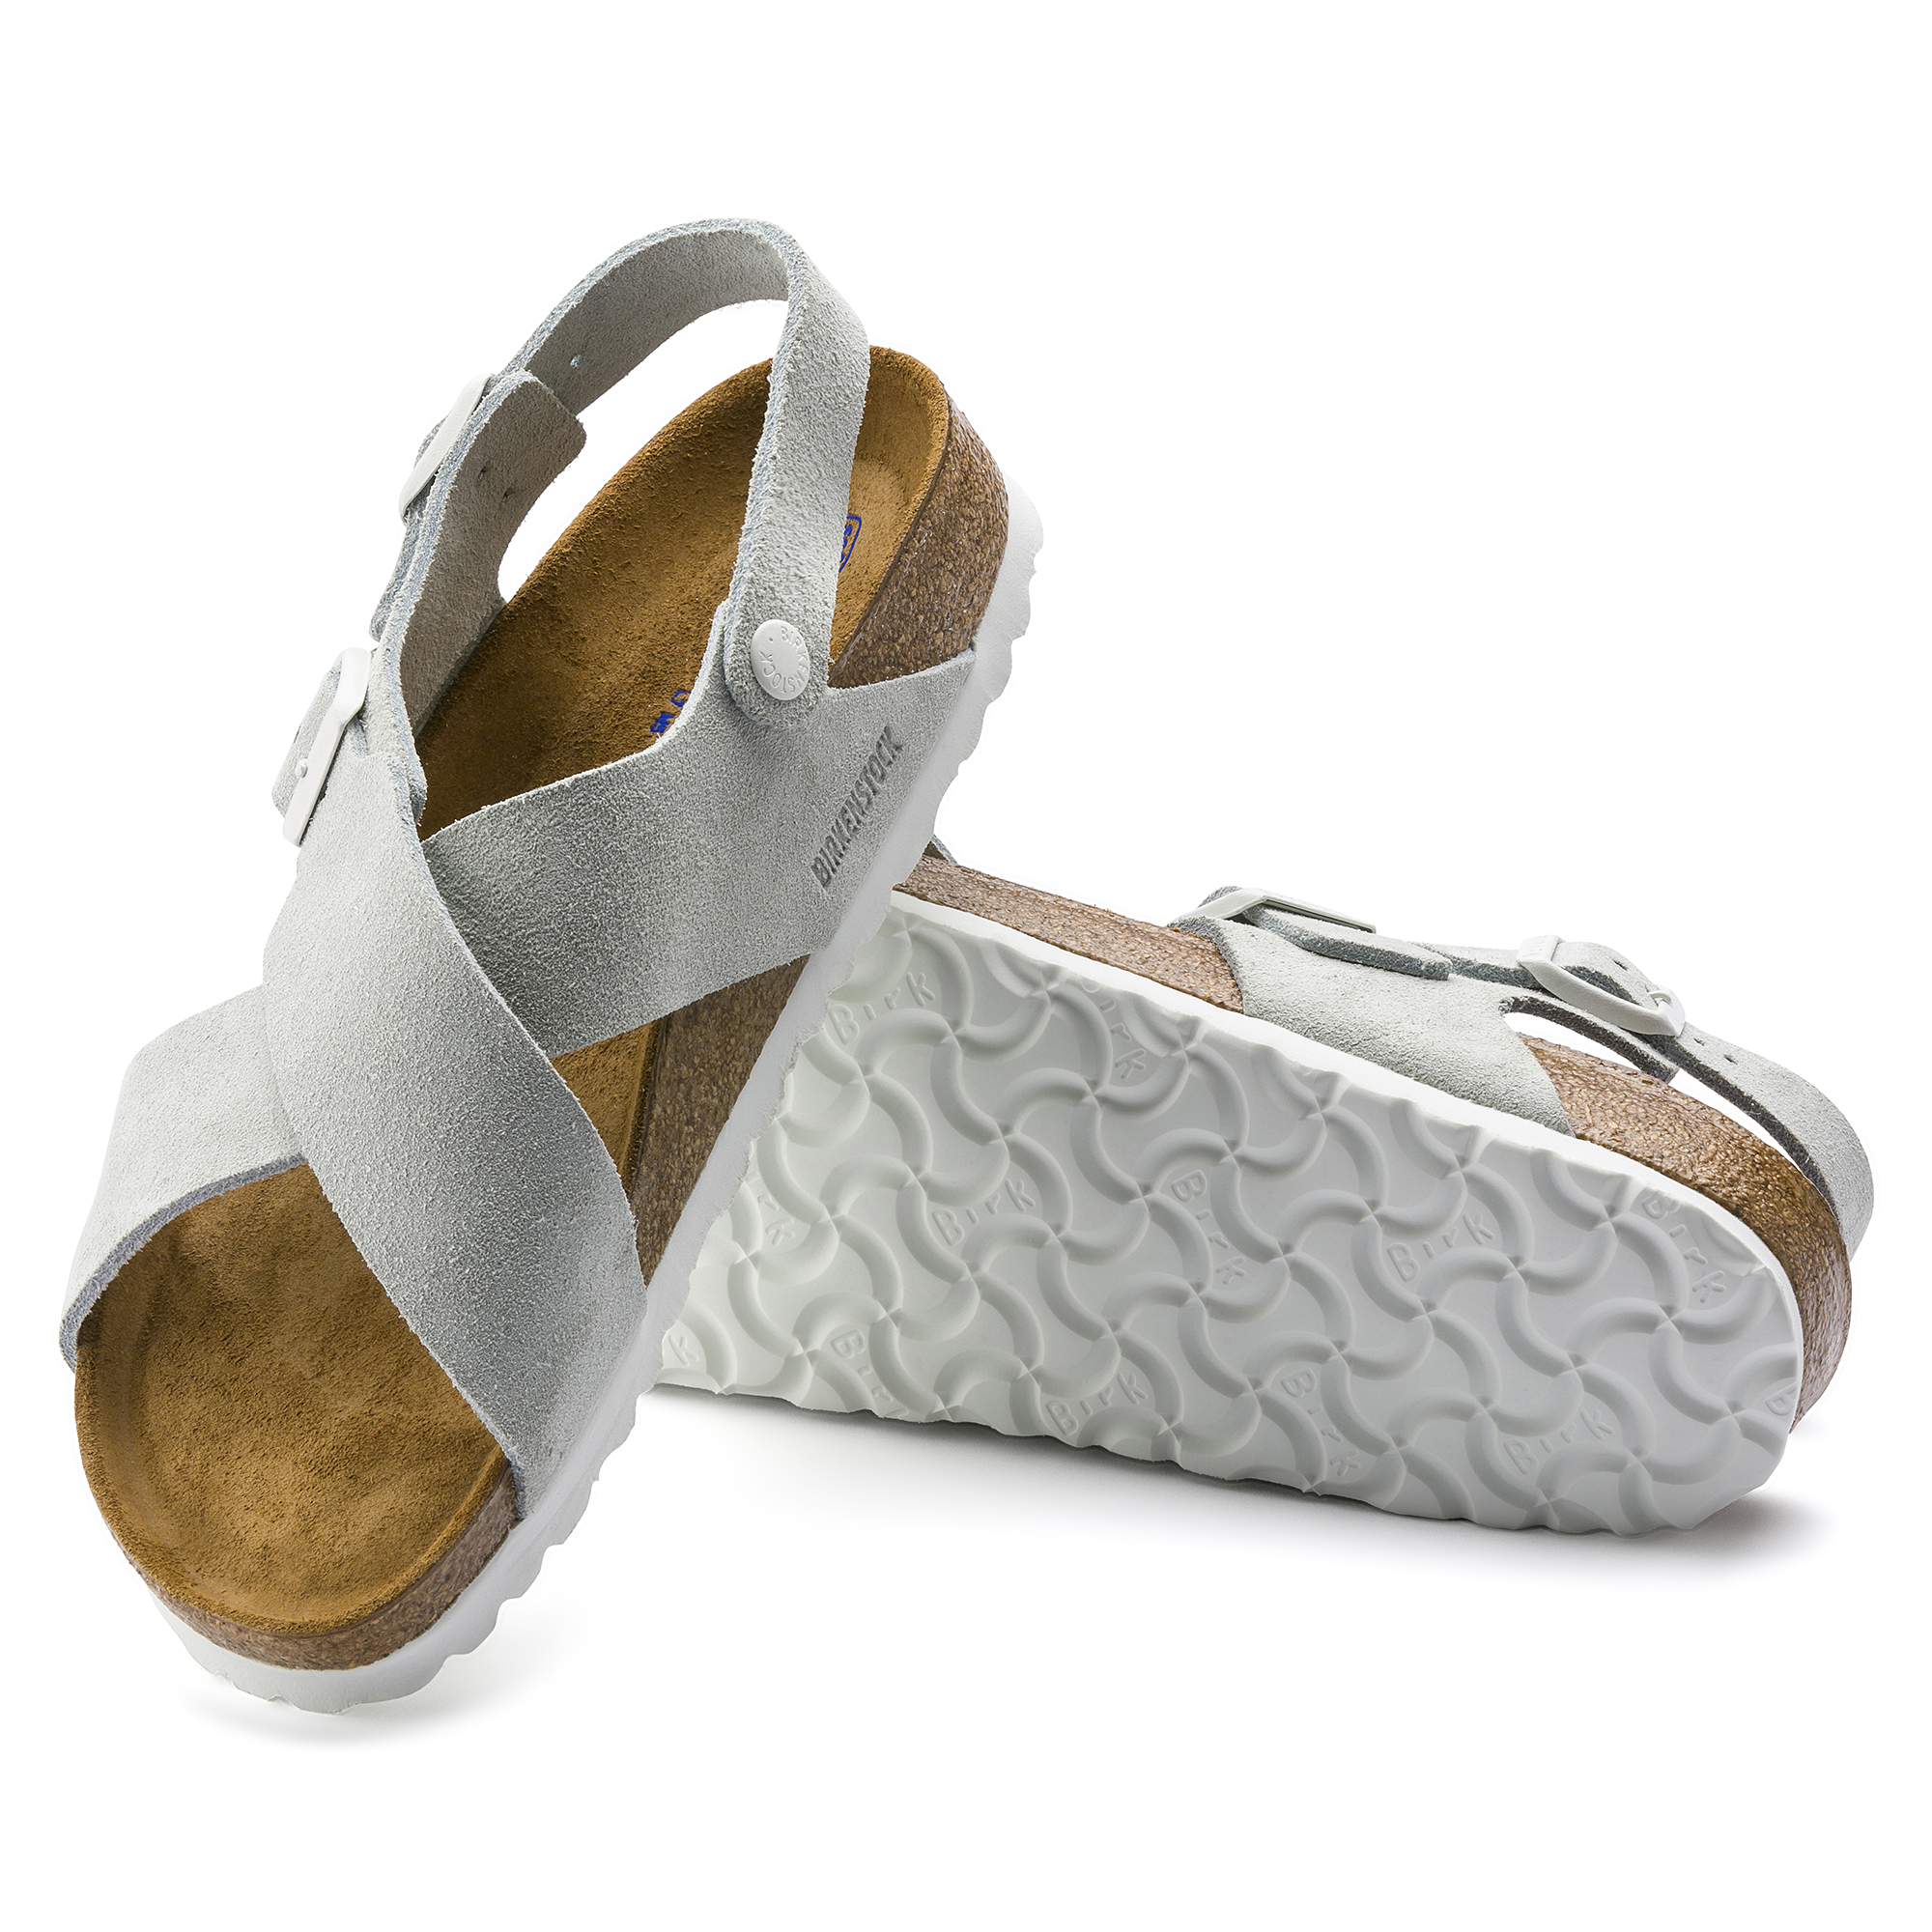 b7a603ee582b0 ... Tulum Suede Leather White